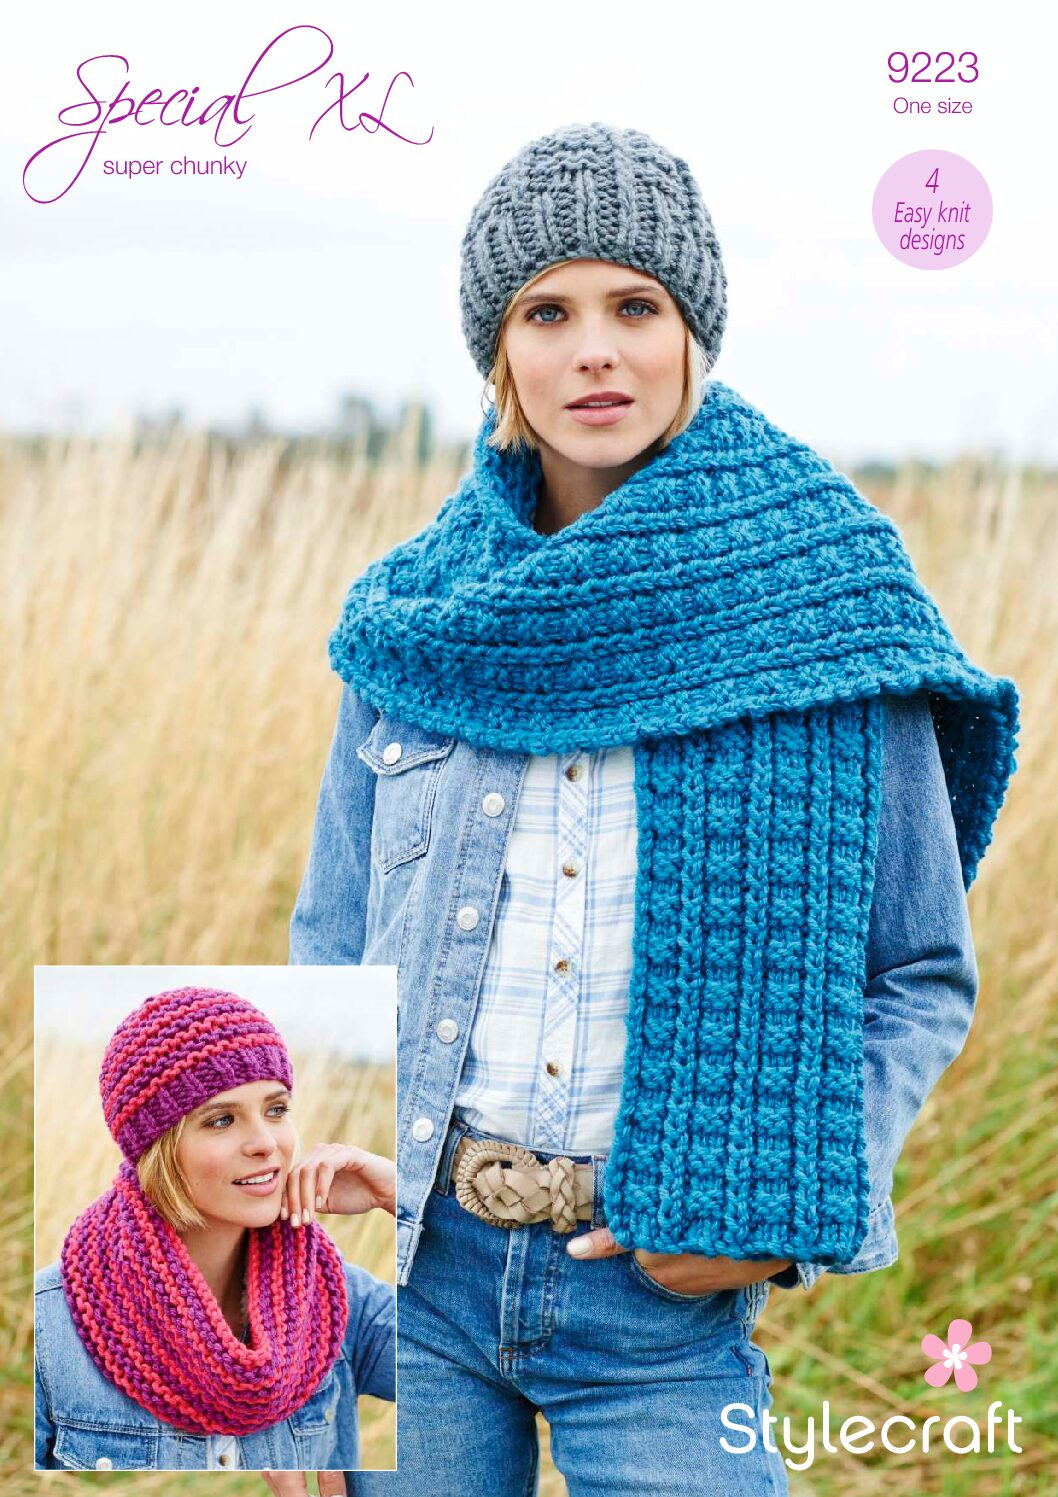 Stylecraft Pattern Special XL 9223 (download) product image